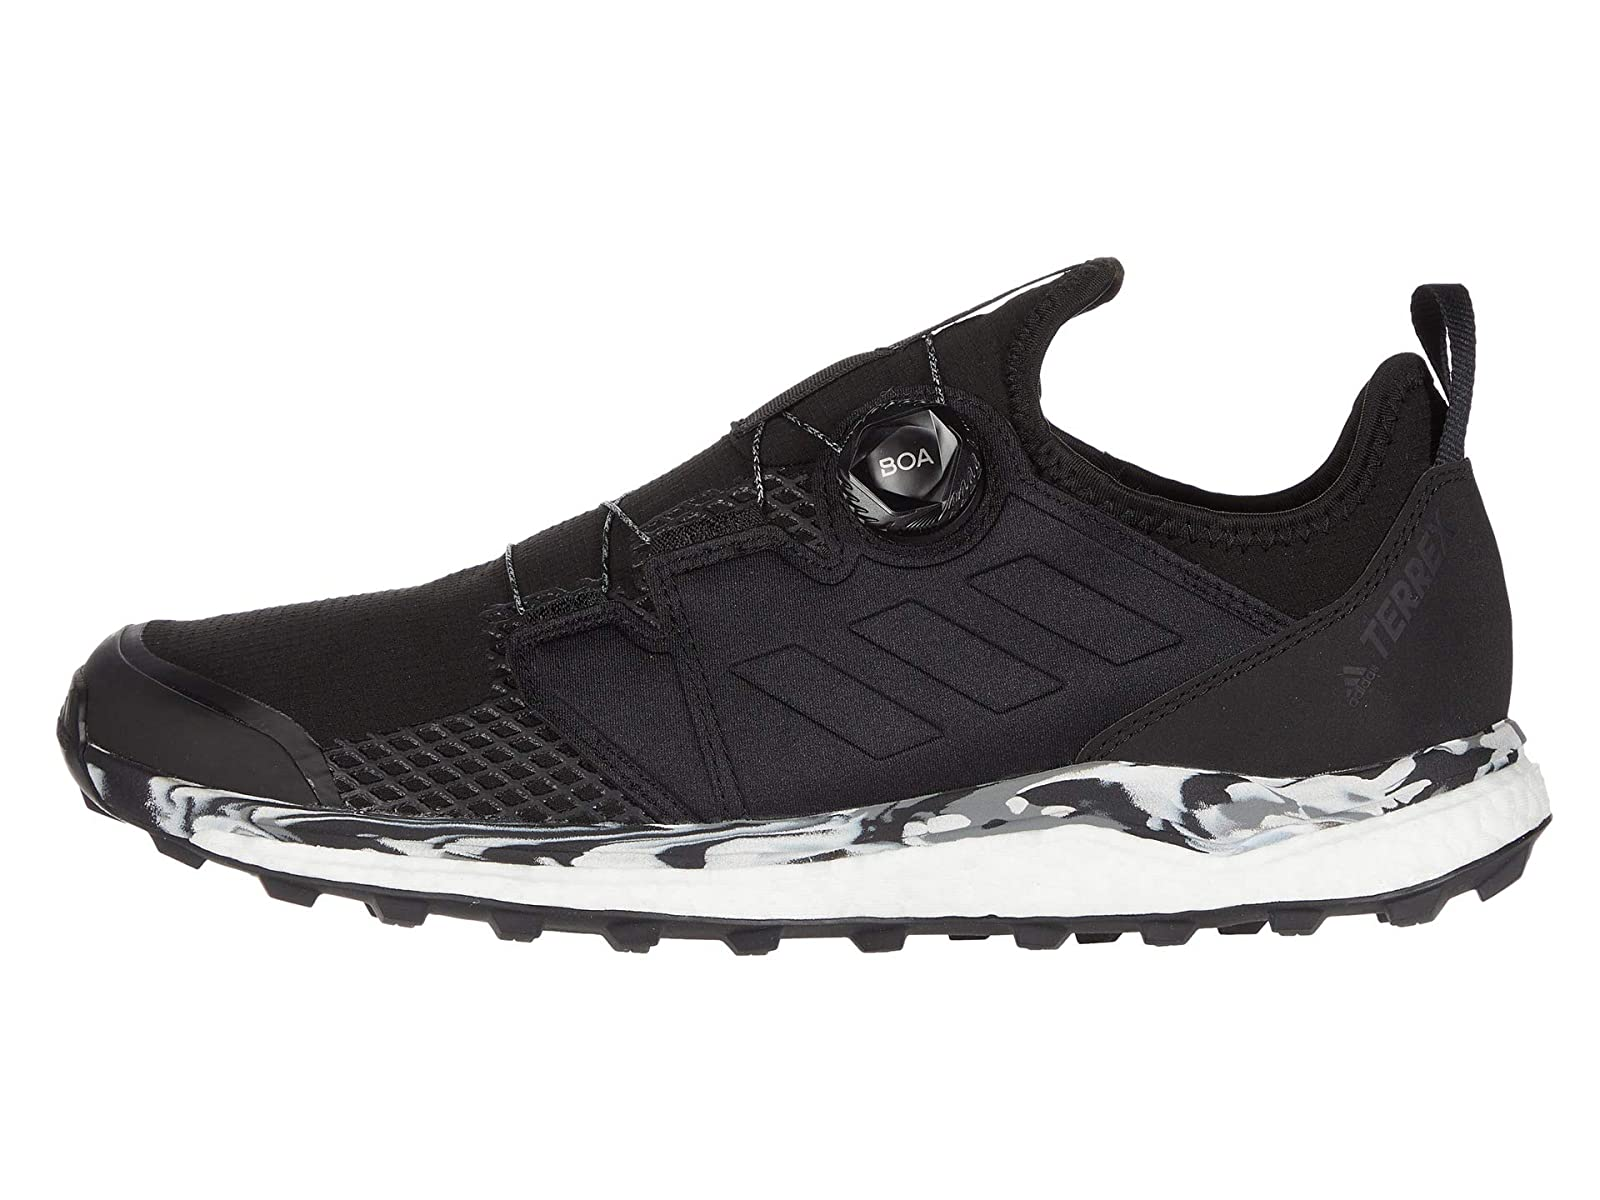 Man-039-s-Sneakers-amp-Athletic-Shoes-adidas-Outdoor-Terrex-Agravic-BOA thumbnail 5